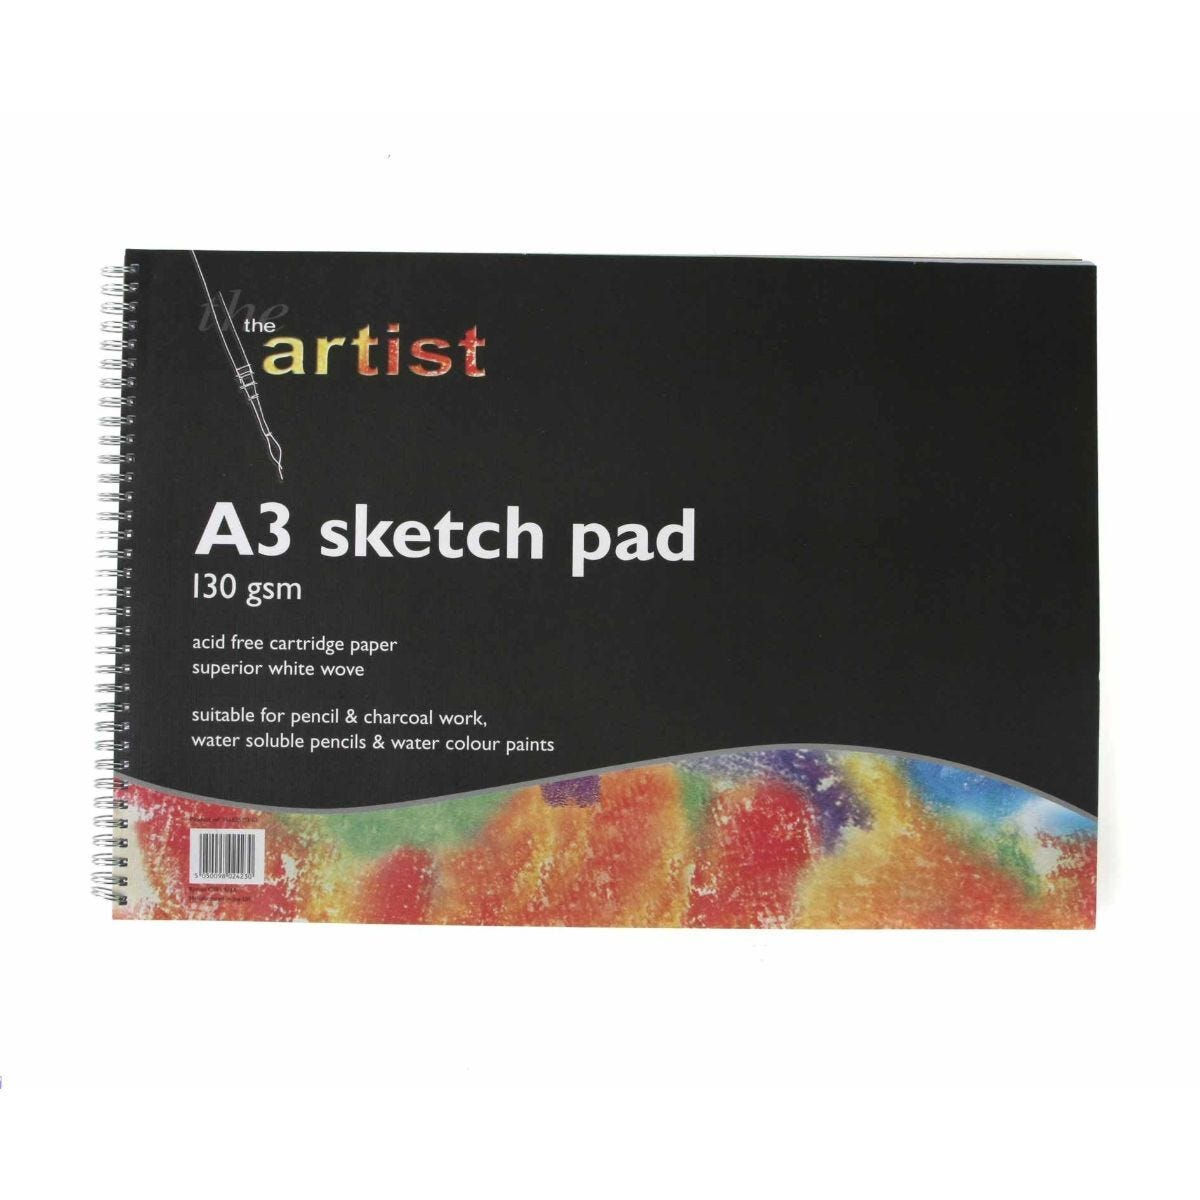 Ryman Sketch Pad A3 130gsm 60 Pages 30 Sheets